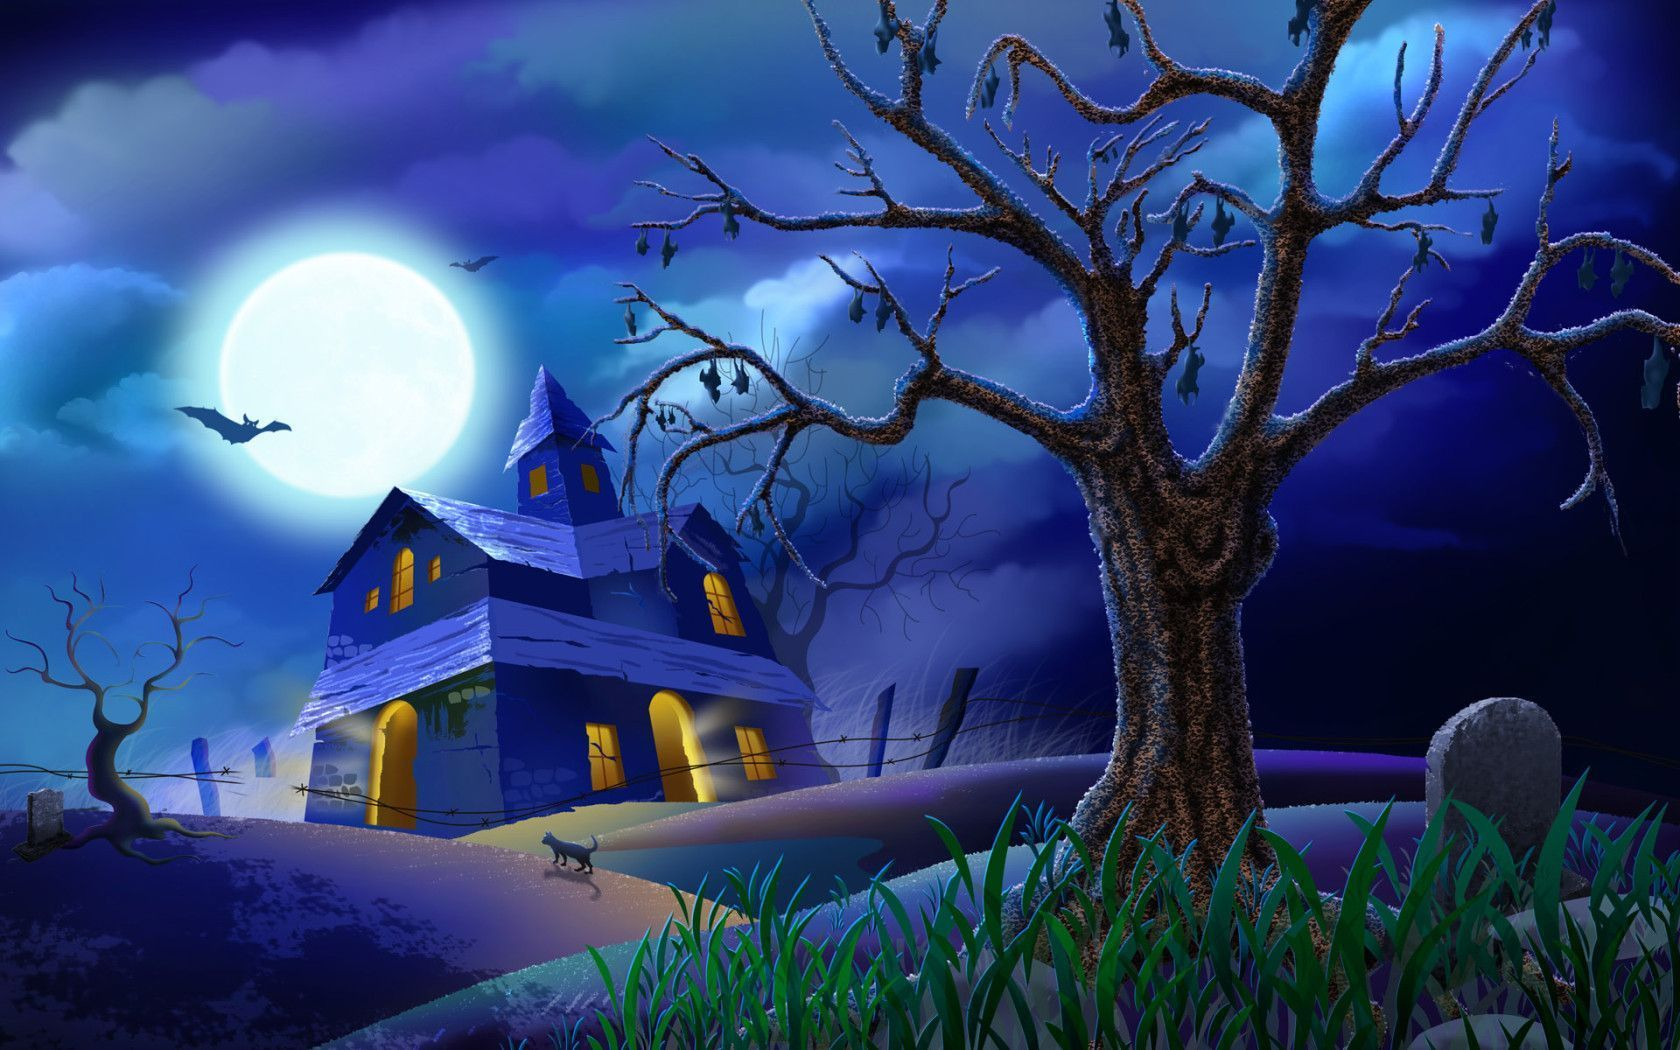 Halloween Live Wallpaper Android Apps on Google Play 1680 1680x1050